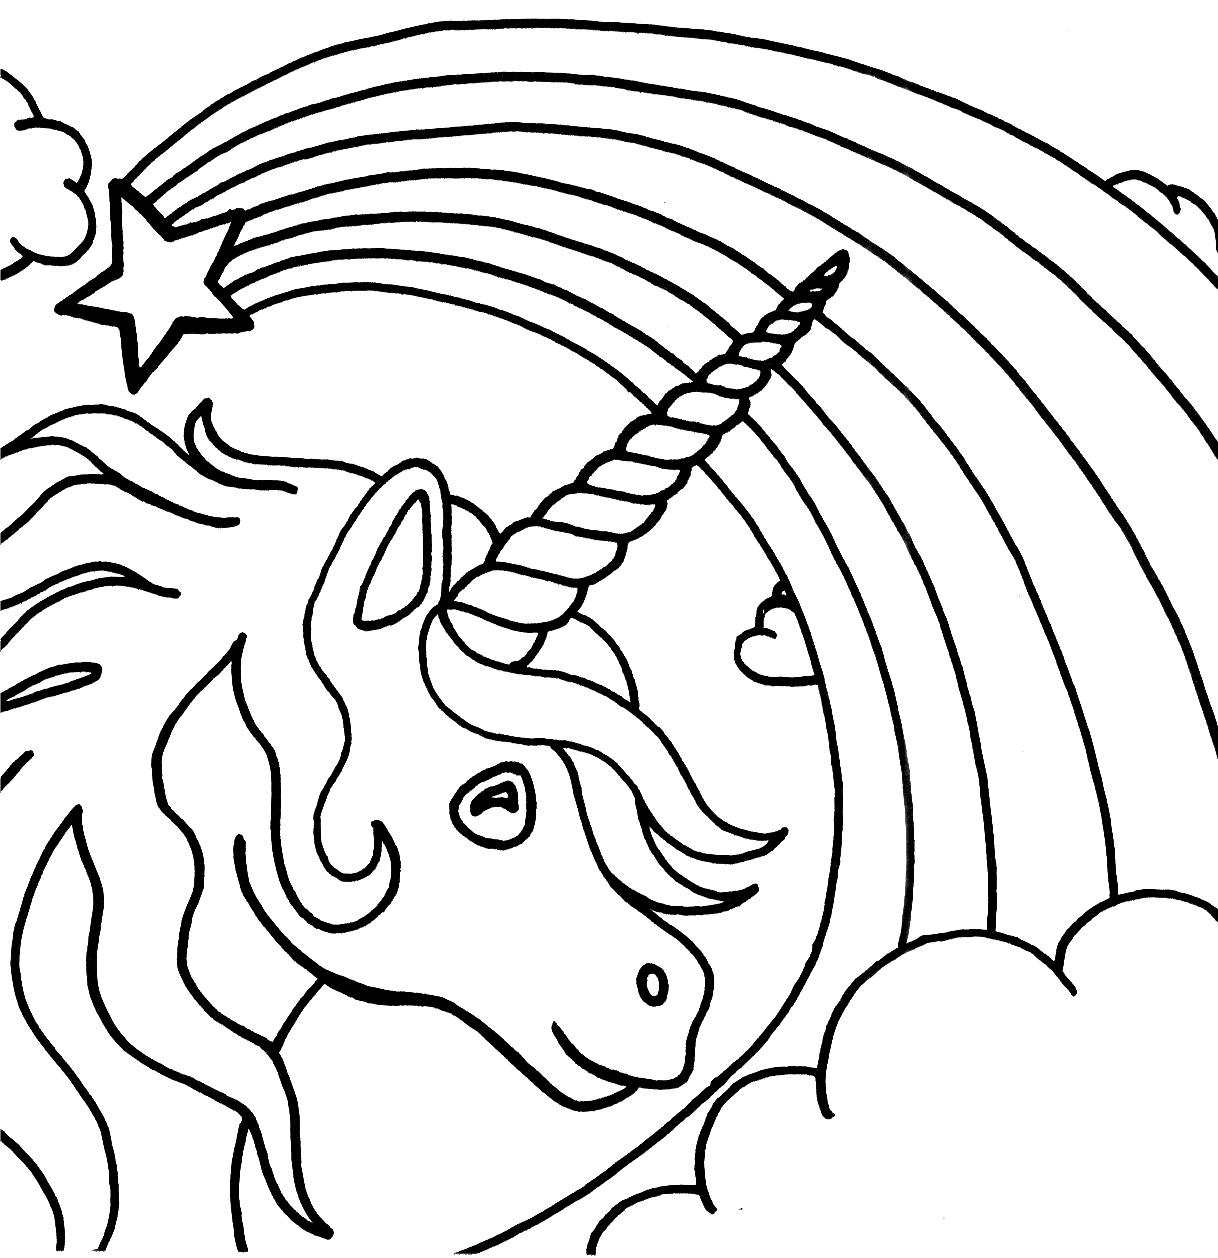 Coloring Pages For Kids At Getdrawings Com Free For